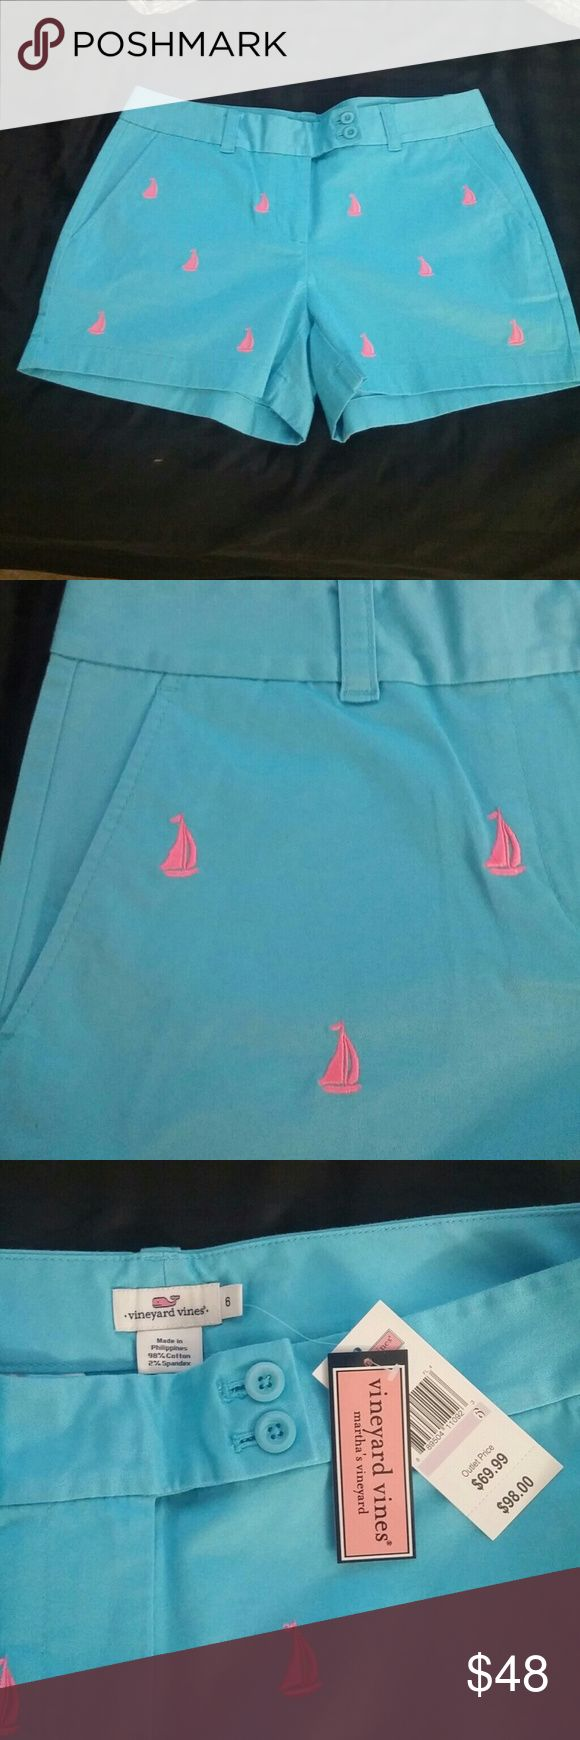 NWT Vineyard Vines Shorts Beautiful blue shorts with hot pink sailboats. Never worn still has tags from outlet. Nice cool material for the heat of summer and a great color for a day on the boat. Vineyard Vines Shorts